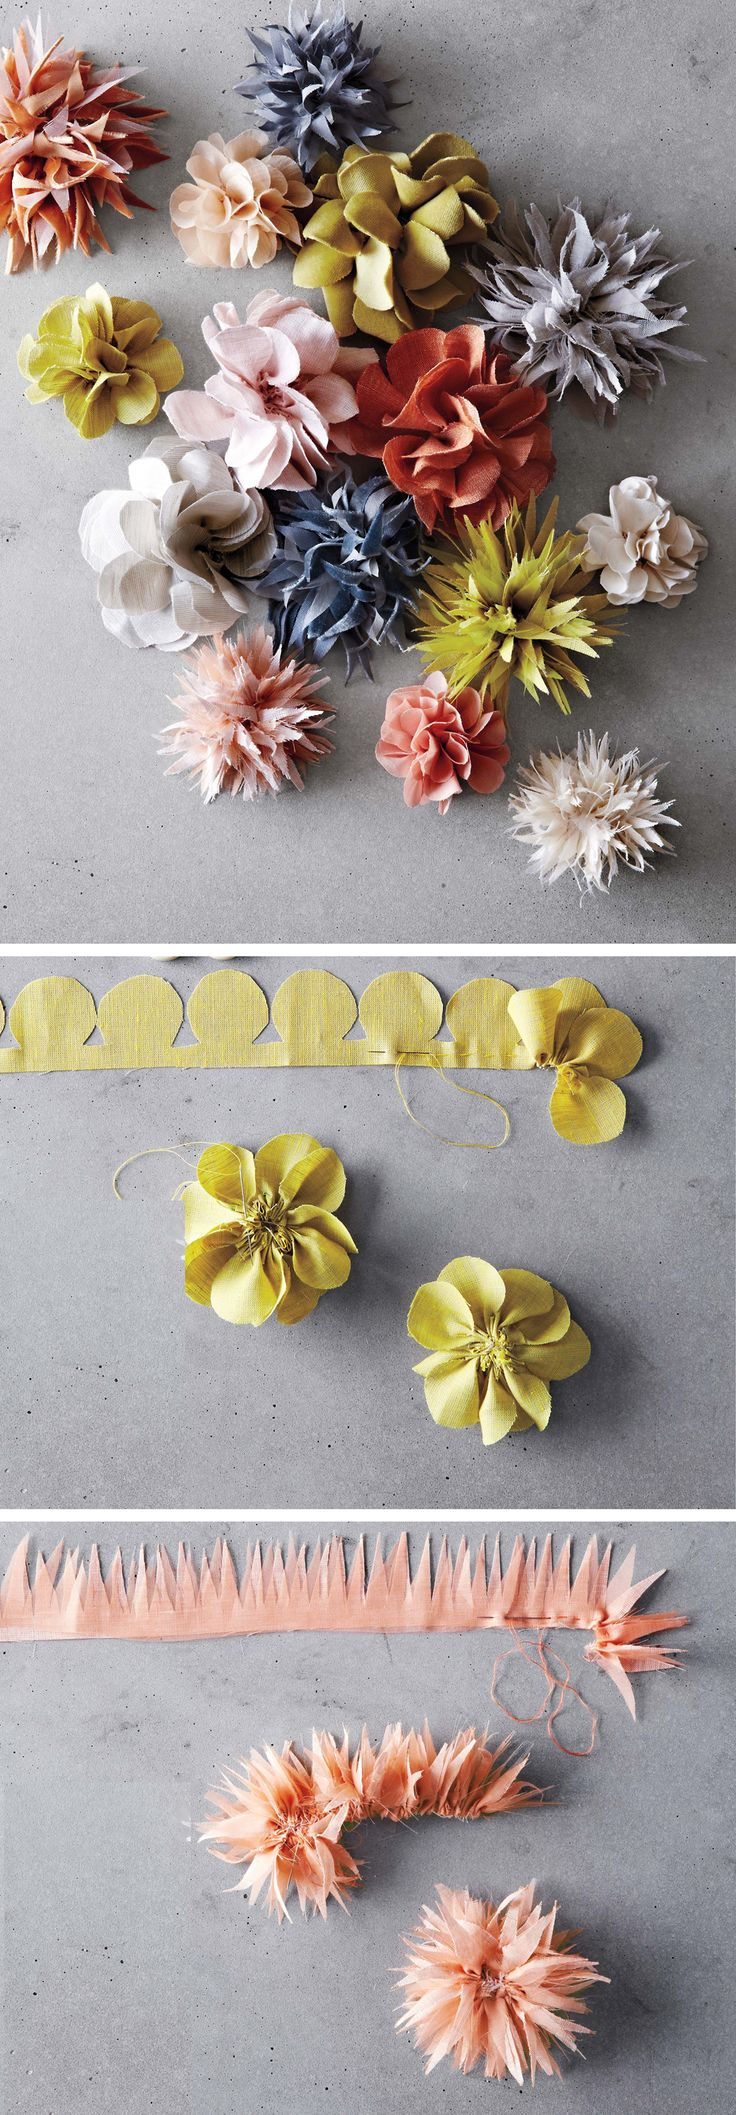 Pinterest Japan DIY Fabric Flowers